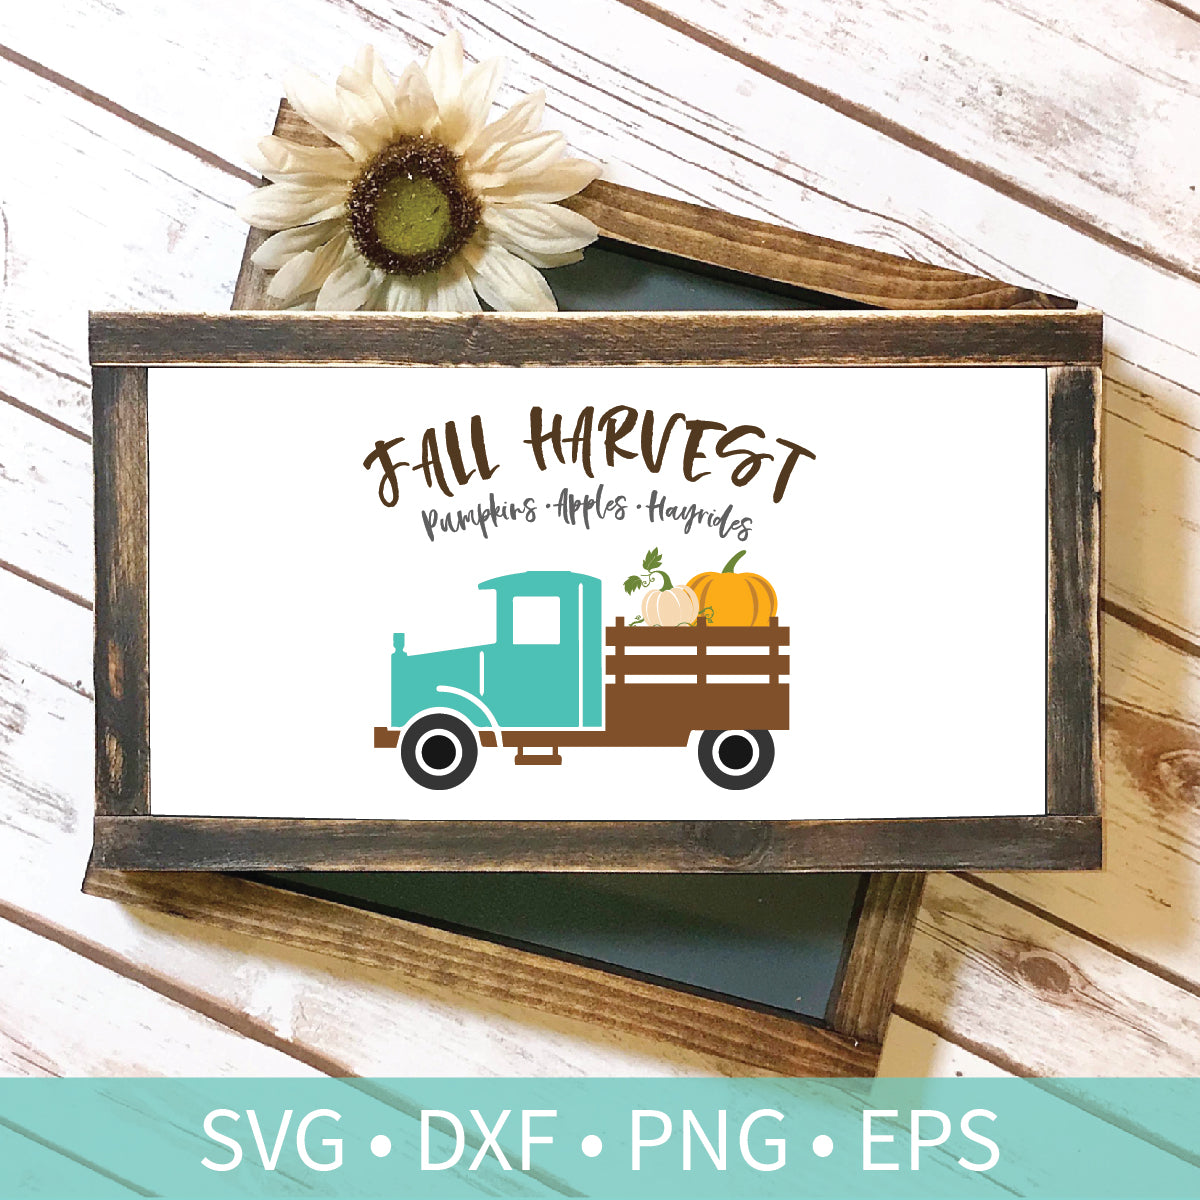 Vintage Truck Fall Harvest Pumpkins Hayrides svg dxf png eps Silhouette Cutting Craft File